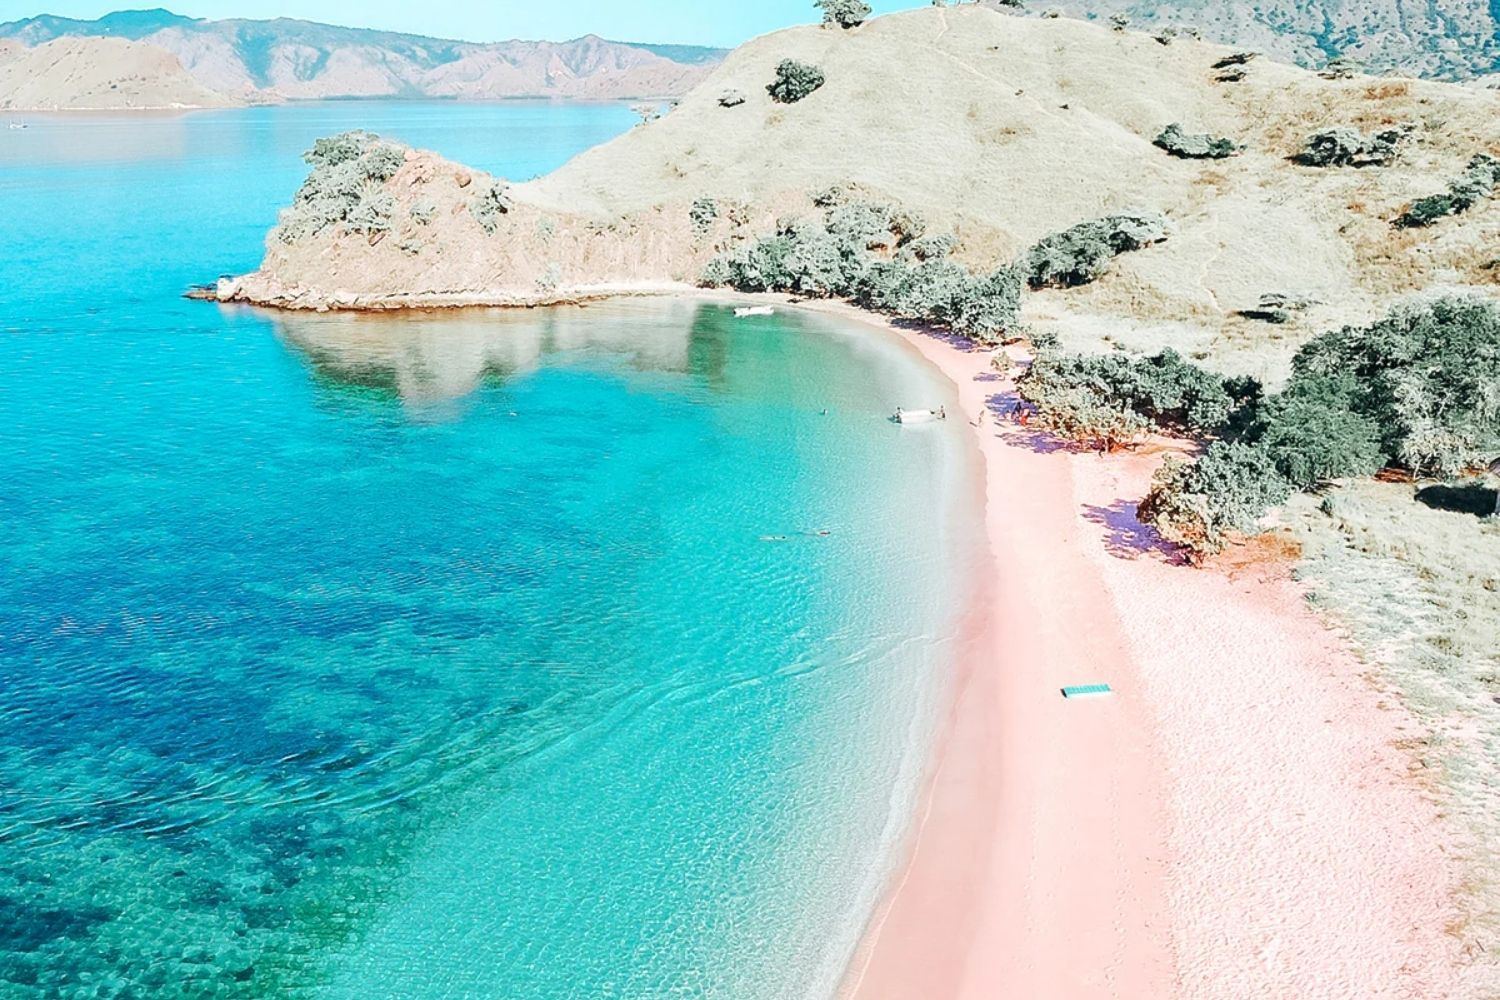 From sea glass-covered beaches to the soft pink sands of Pantai Merah in Indonesia's Komodo Island (pictured here), these beaches are truly unique (Photo: Ministry of Tourism, Indonesia)